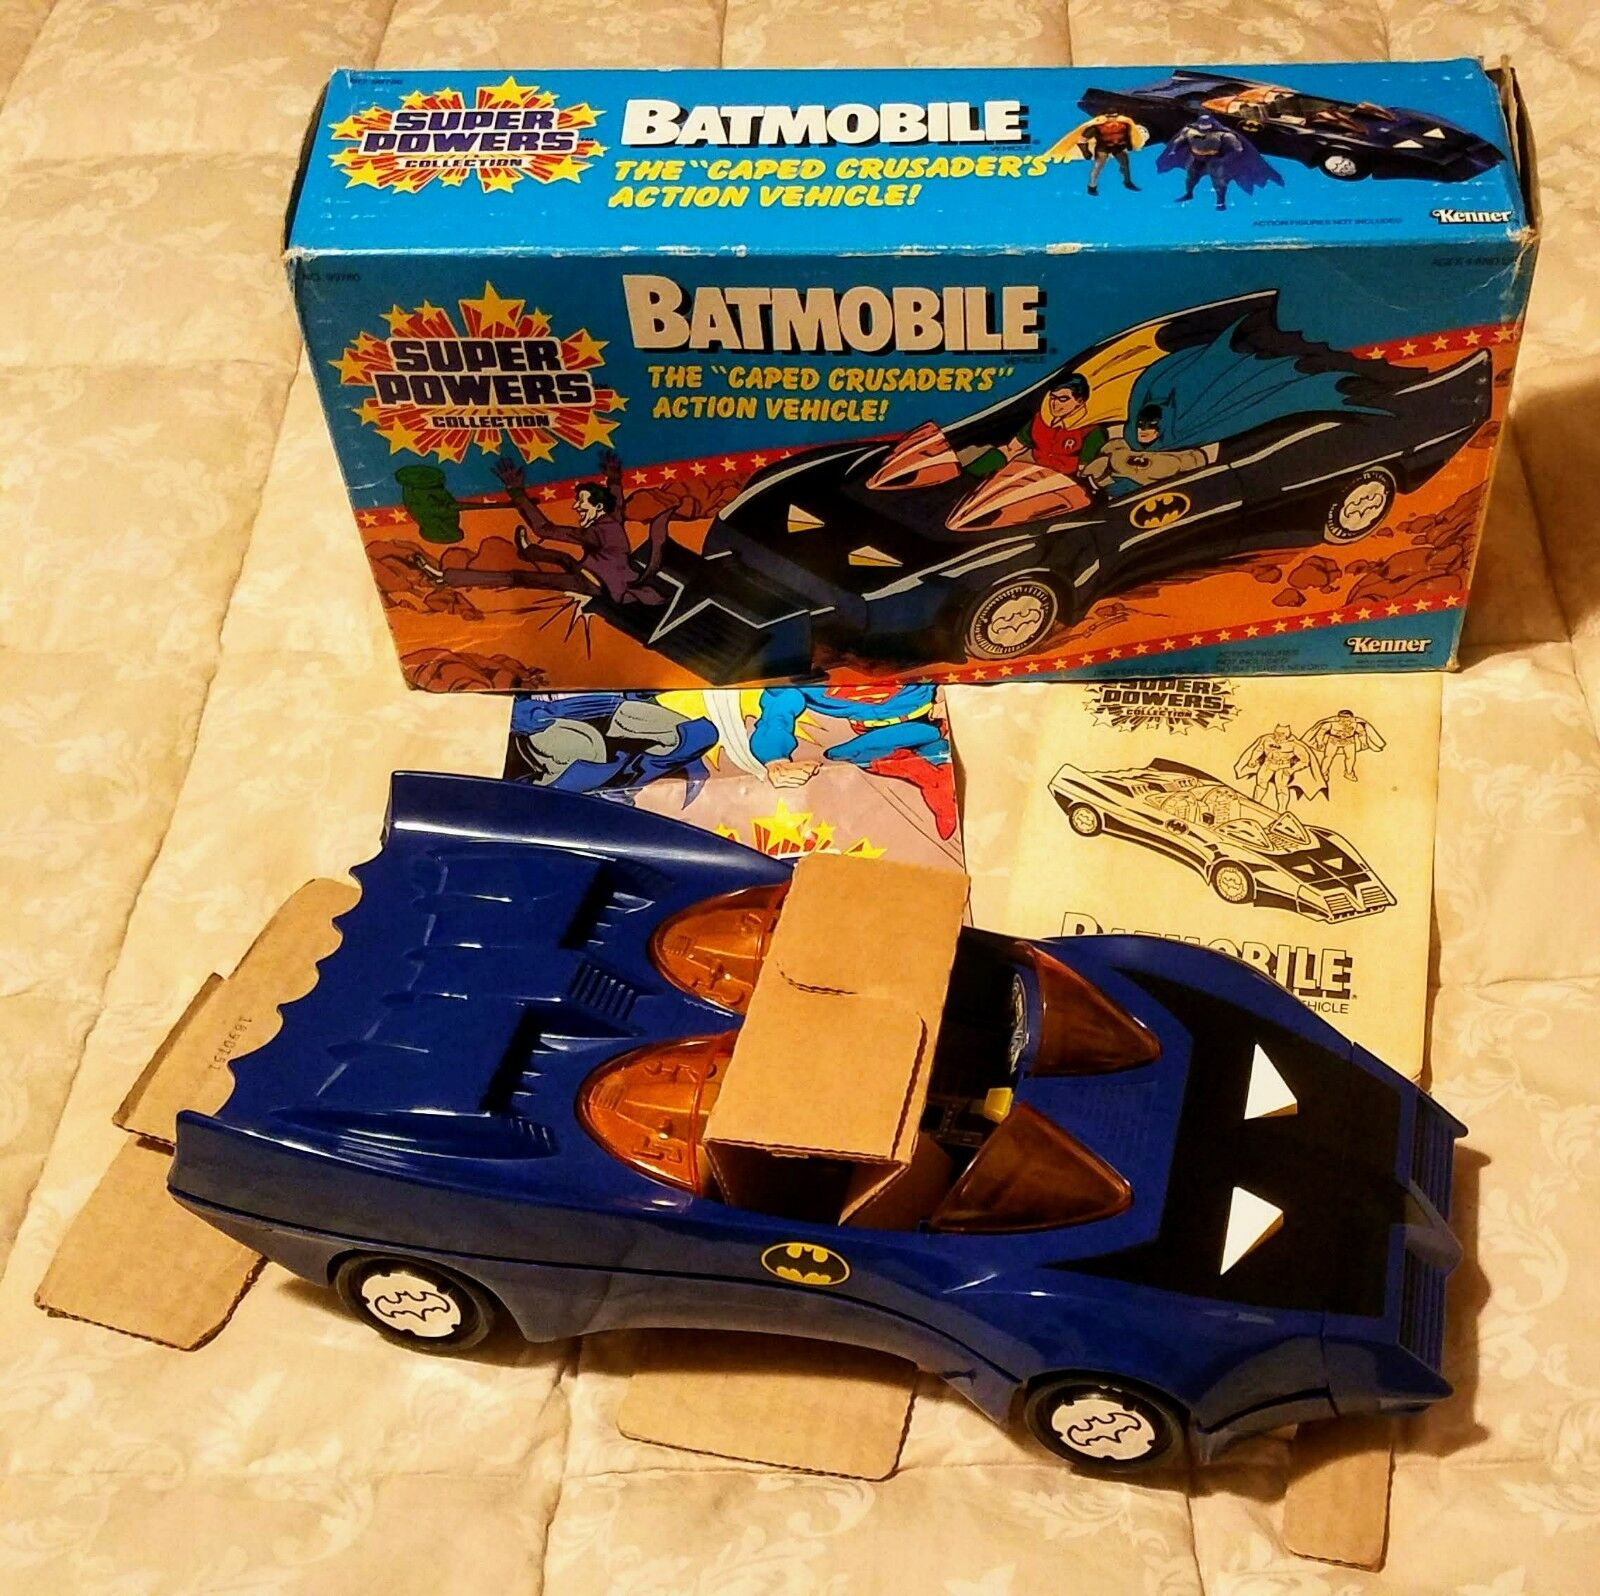 BATMAN BATMOBILE KENNER KENNER KENNER SUPER POWERS 1984 NEW PRISTINE 100% COMPLETE 549bfe